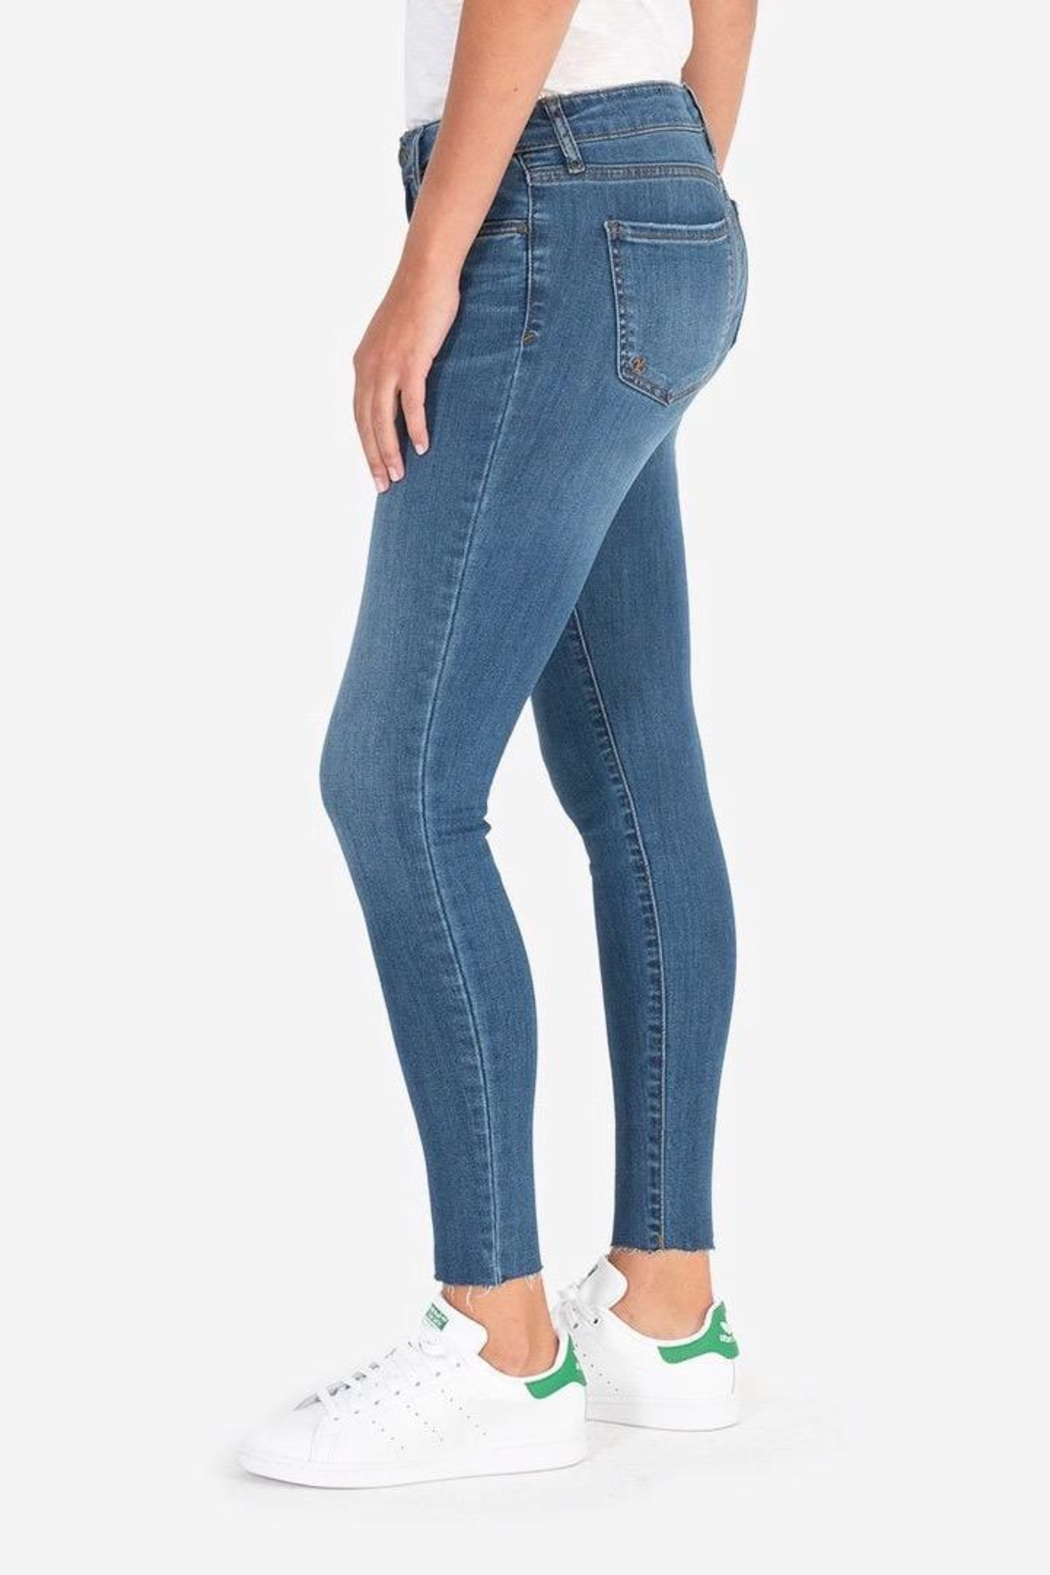 Kut from the Kloth Donna Ankle Skinny - Front Full Image